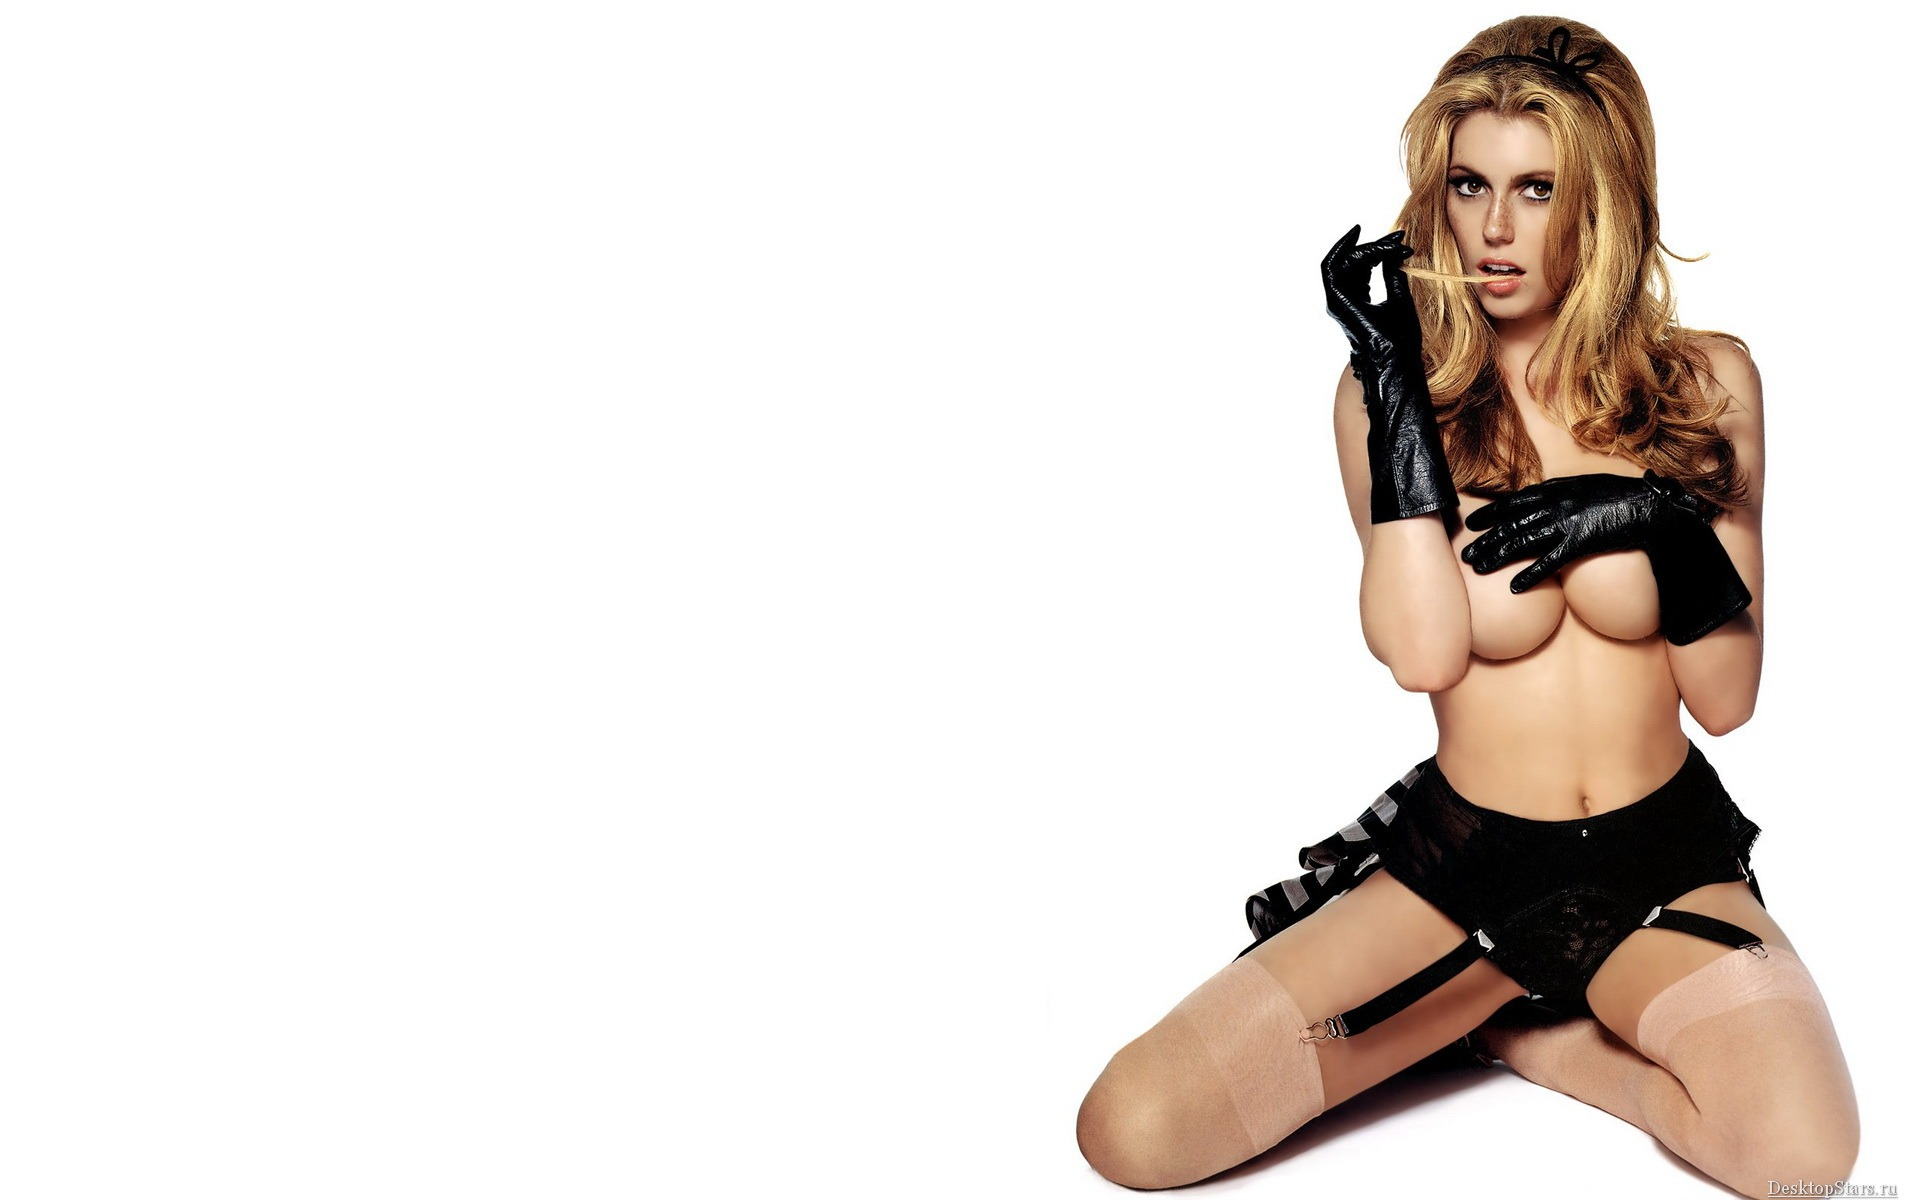 Diora Baird #008 - 1920x1200 Wallpapers Pictures Photos Images